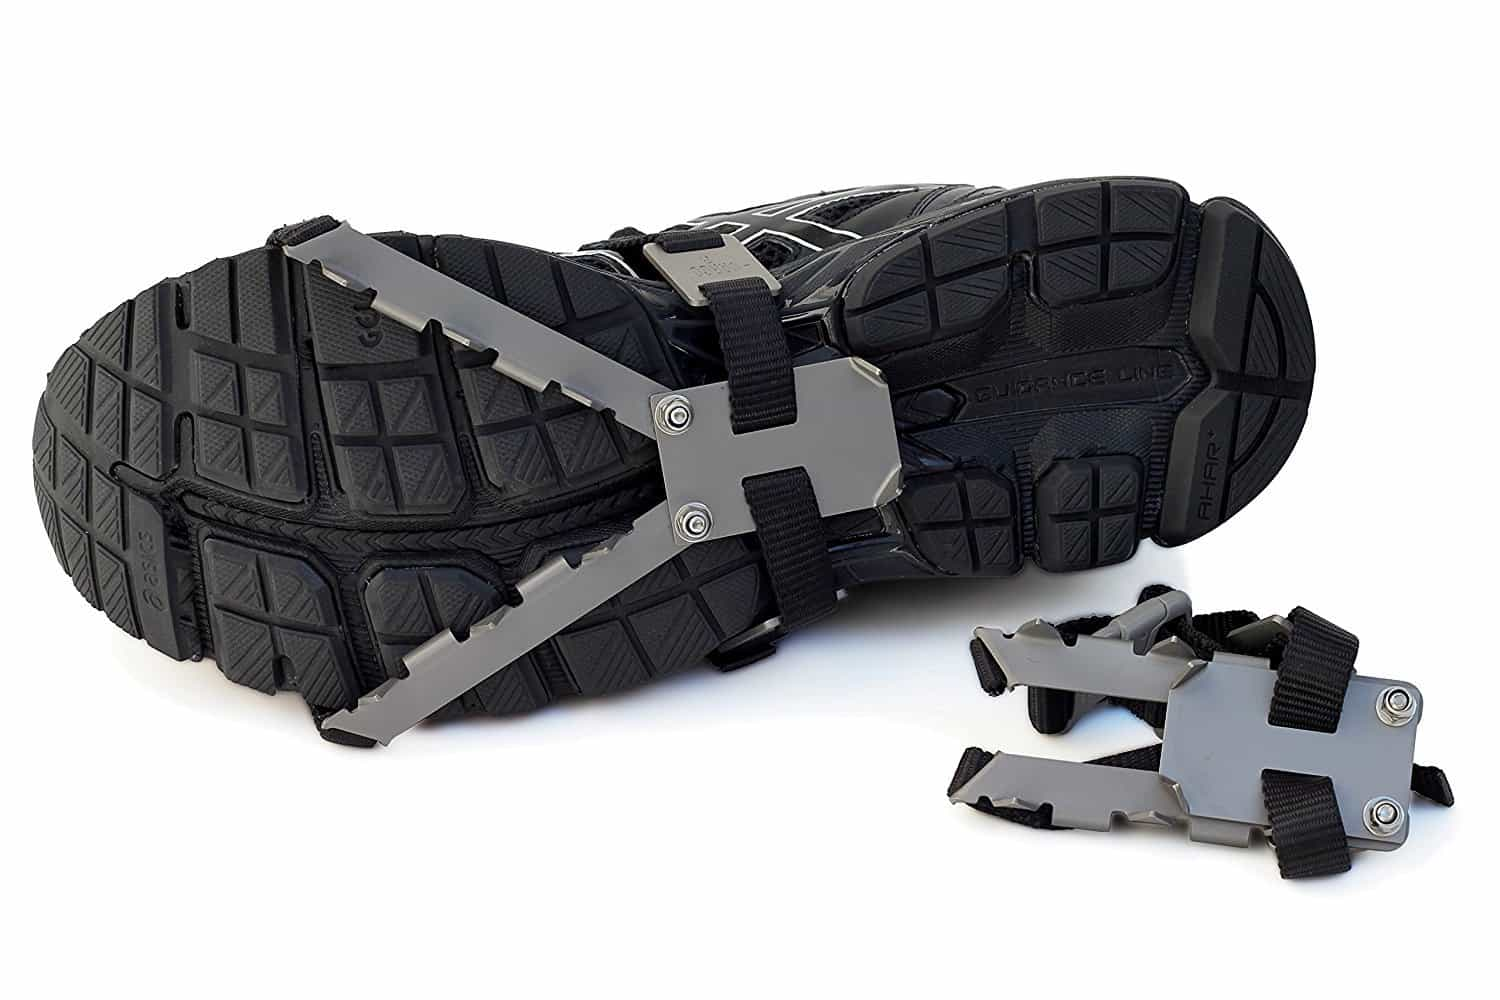 Vargo Titanium Pocket Cleats: